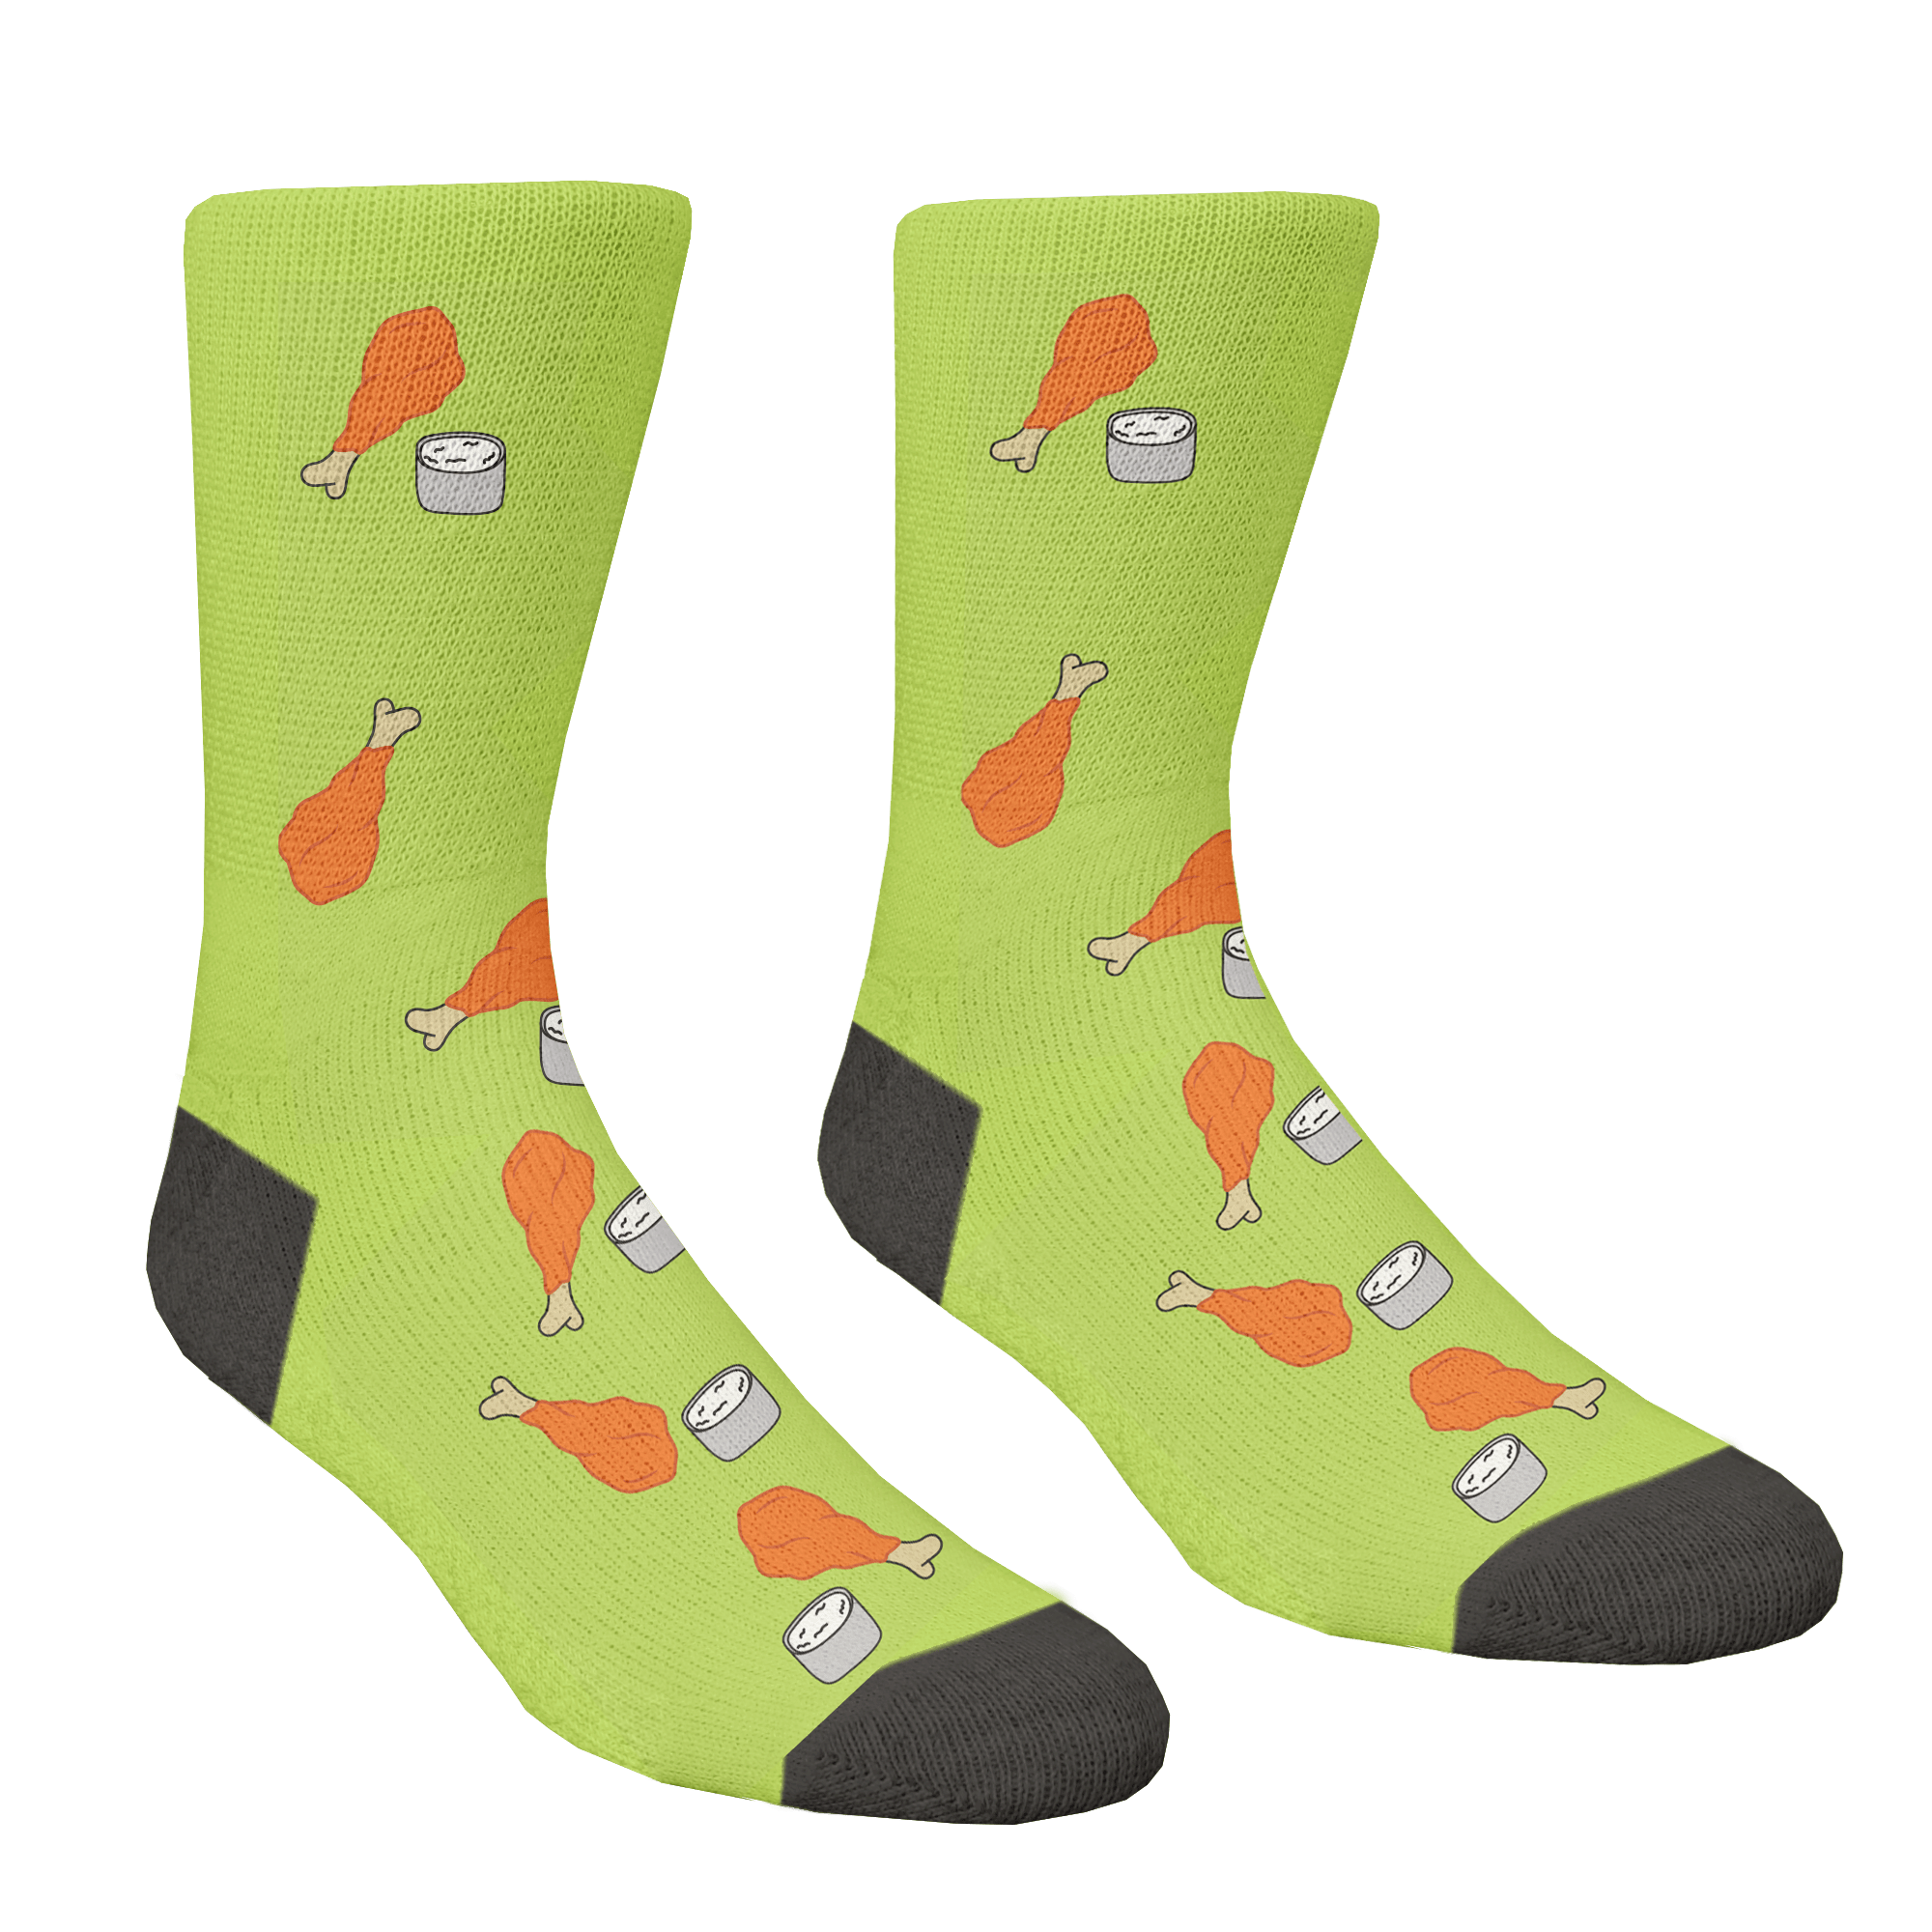 Socks For Ronald